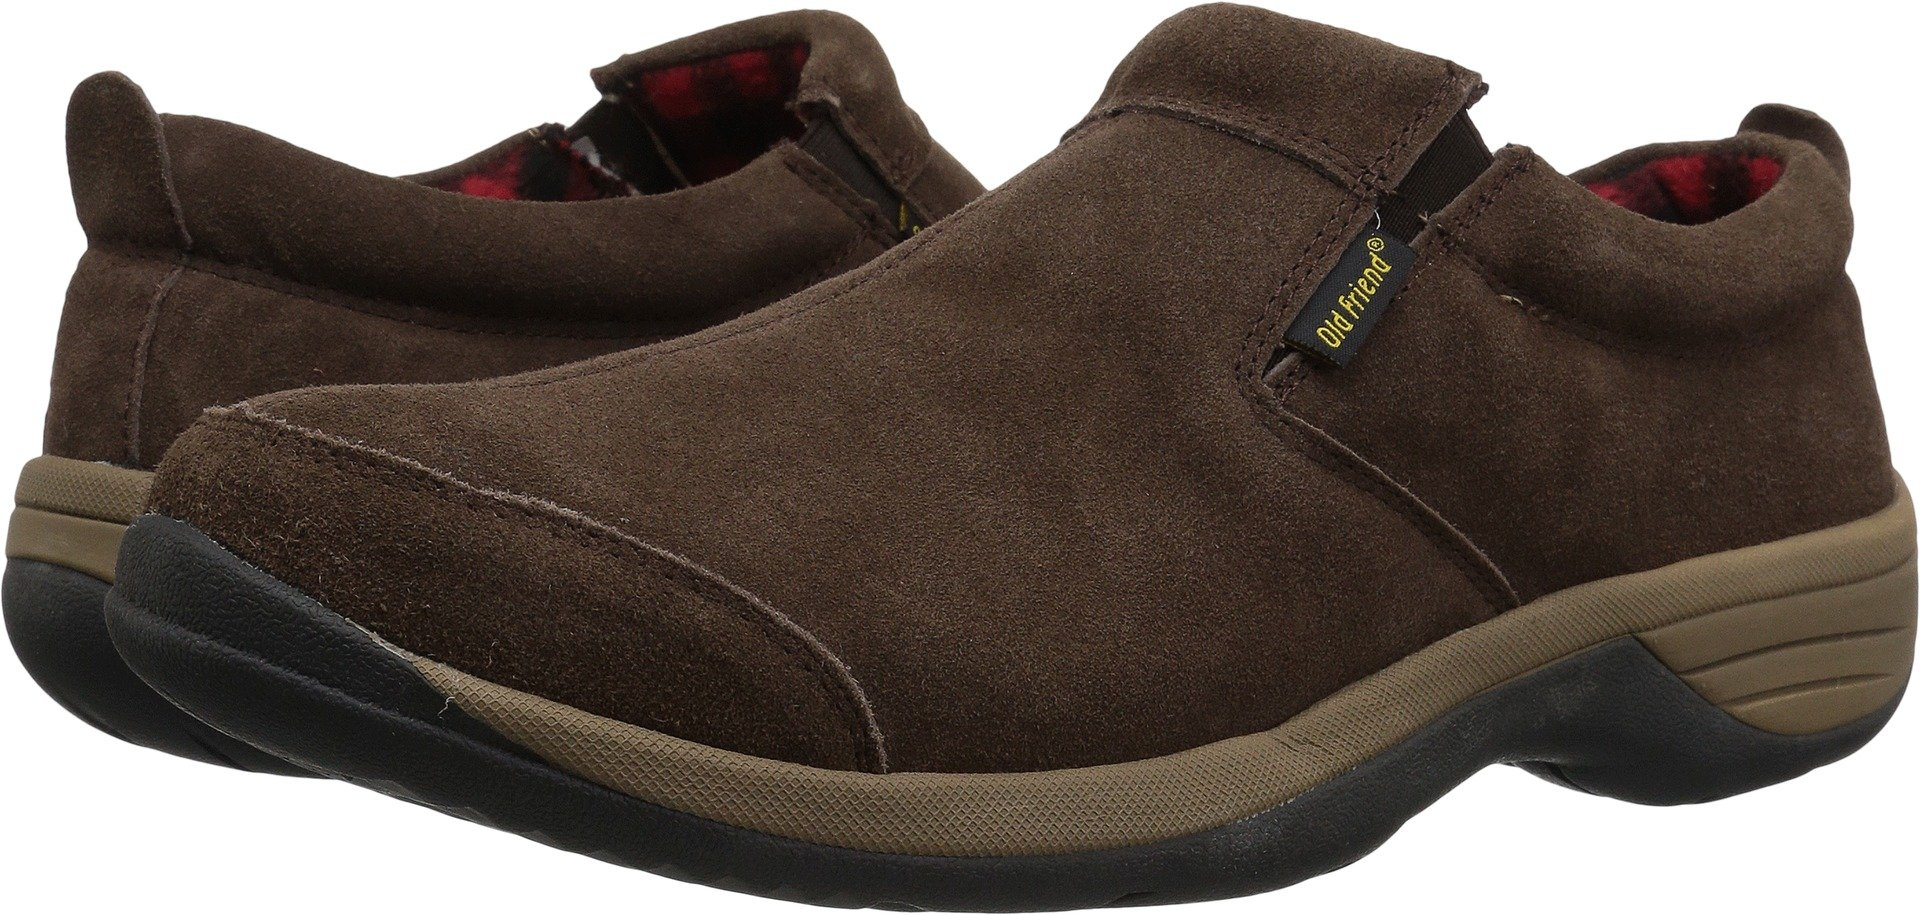 Old Friend Men's Adirondack Moccasin, Chocolate Brown, 15 M US